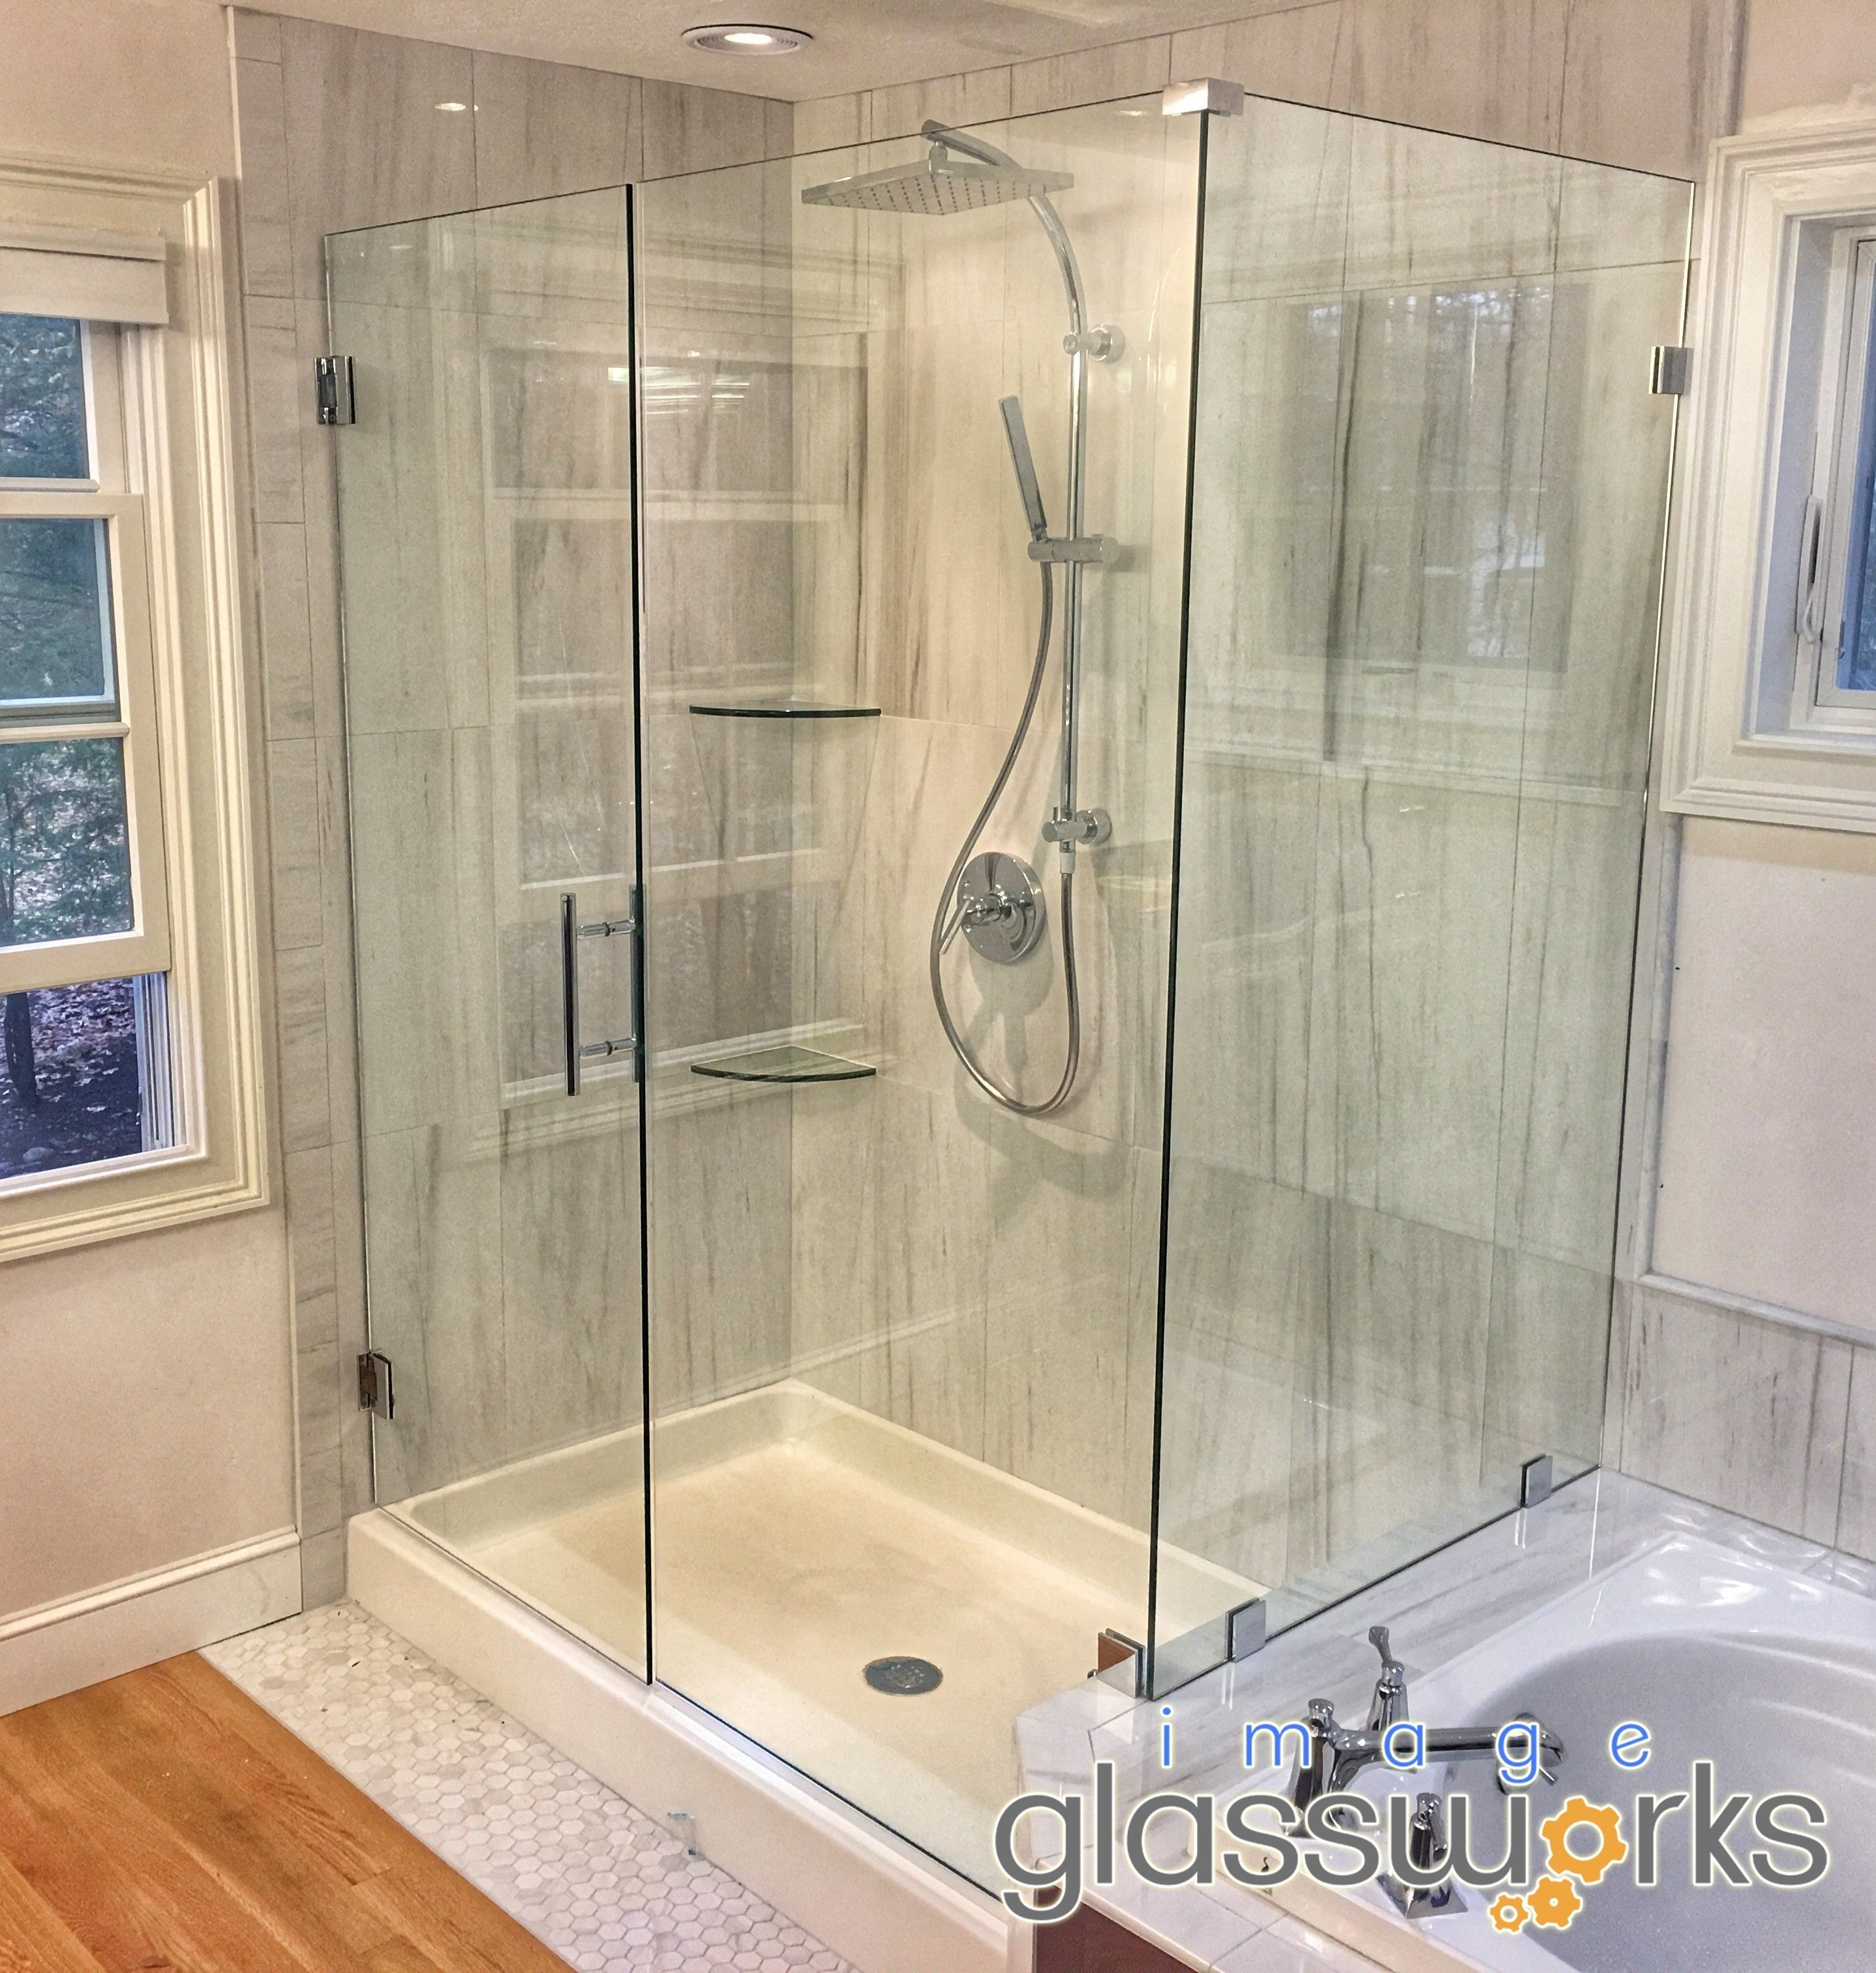 Take A Look At This Amazing 3 Piece Framelese Shower Door